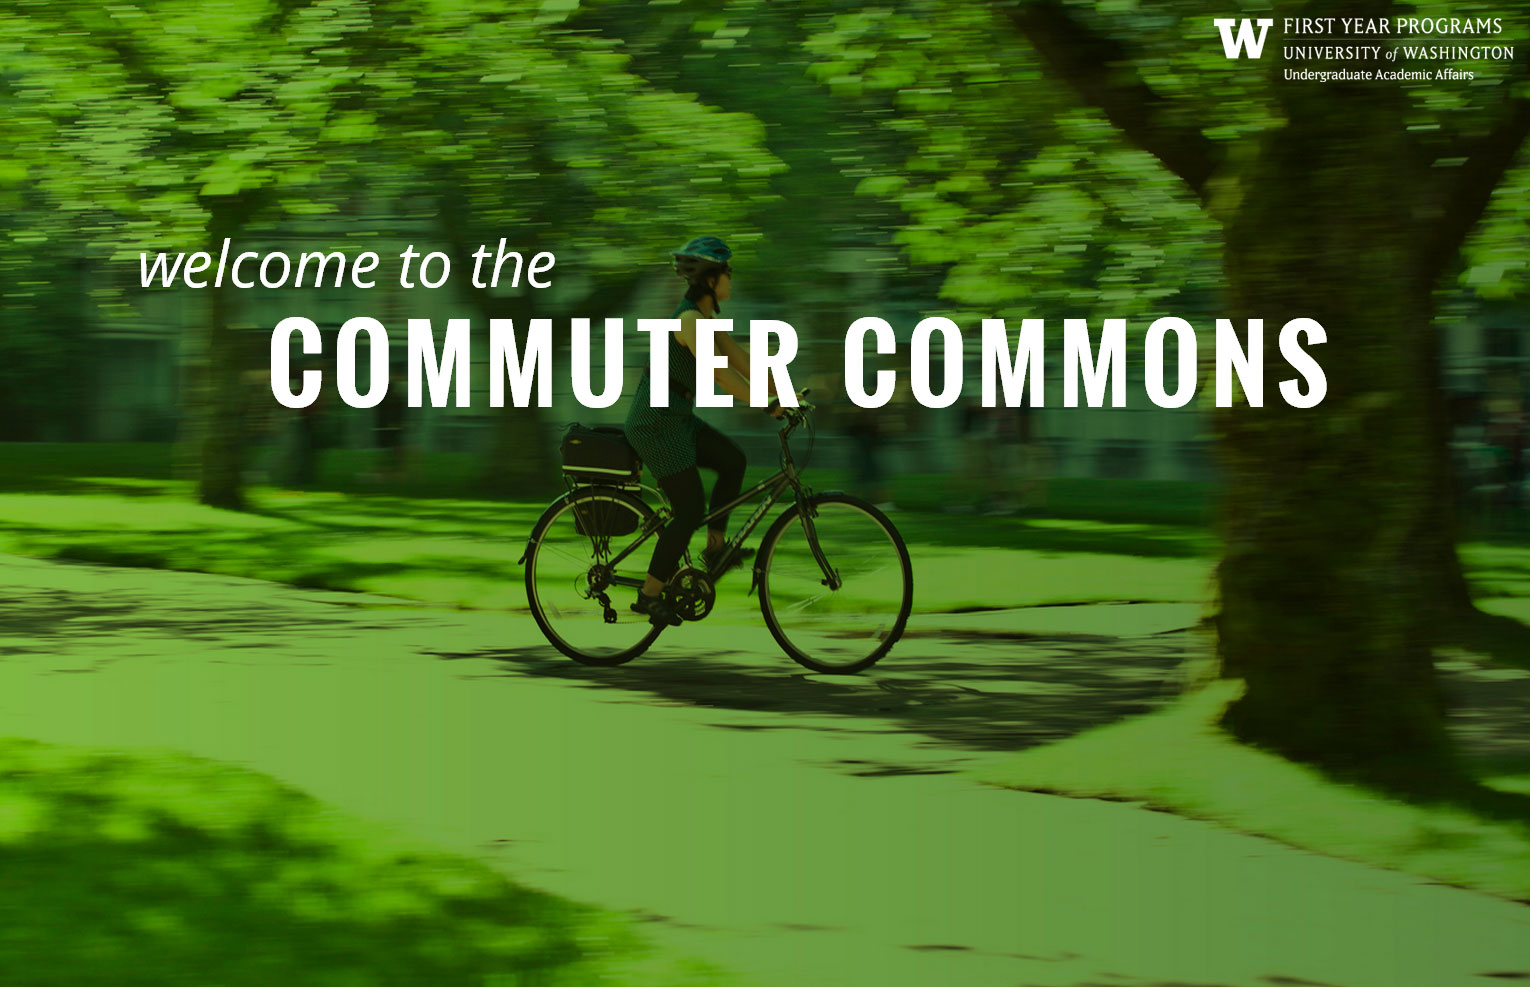 University of Washington Commuter Commons